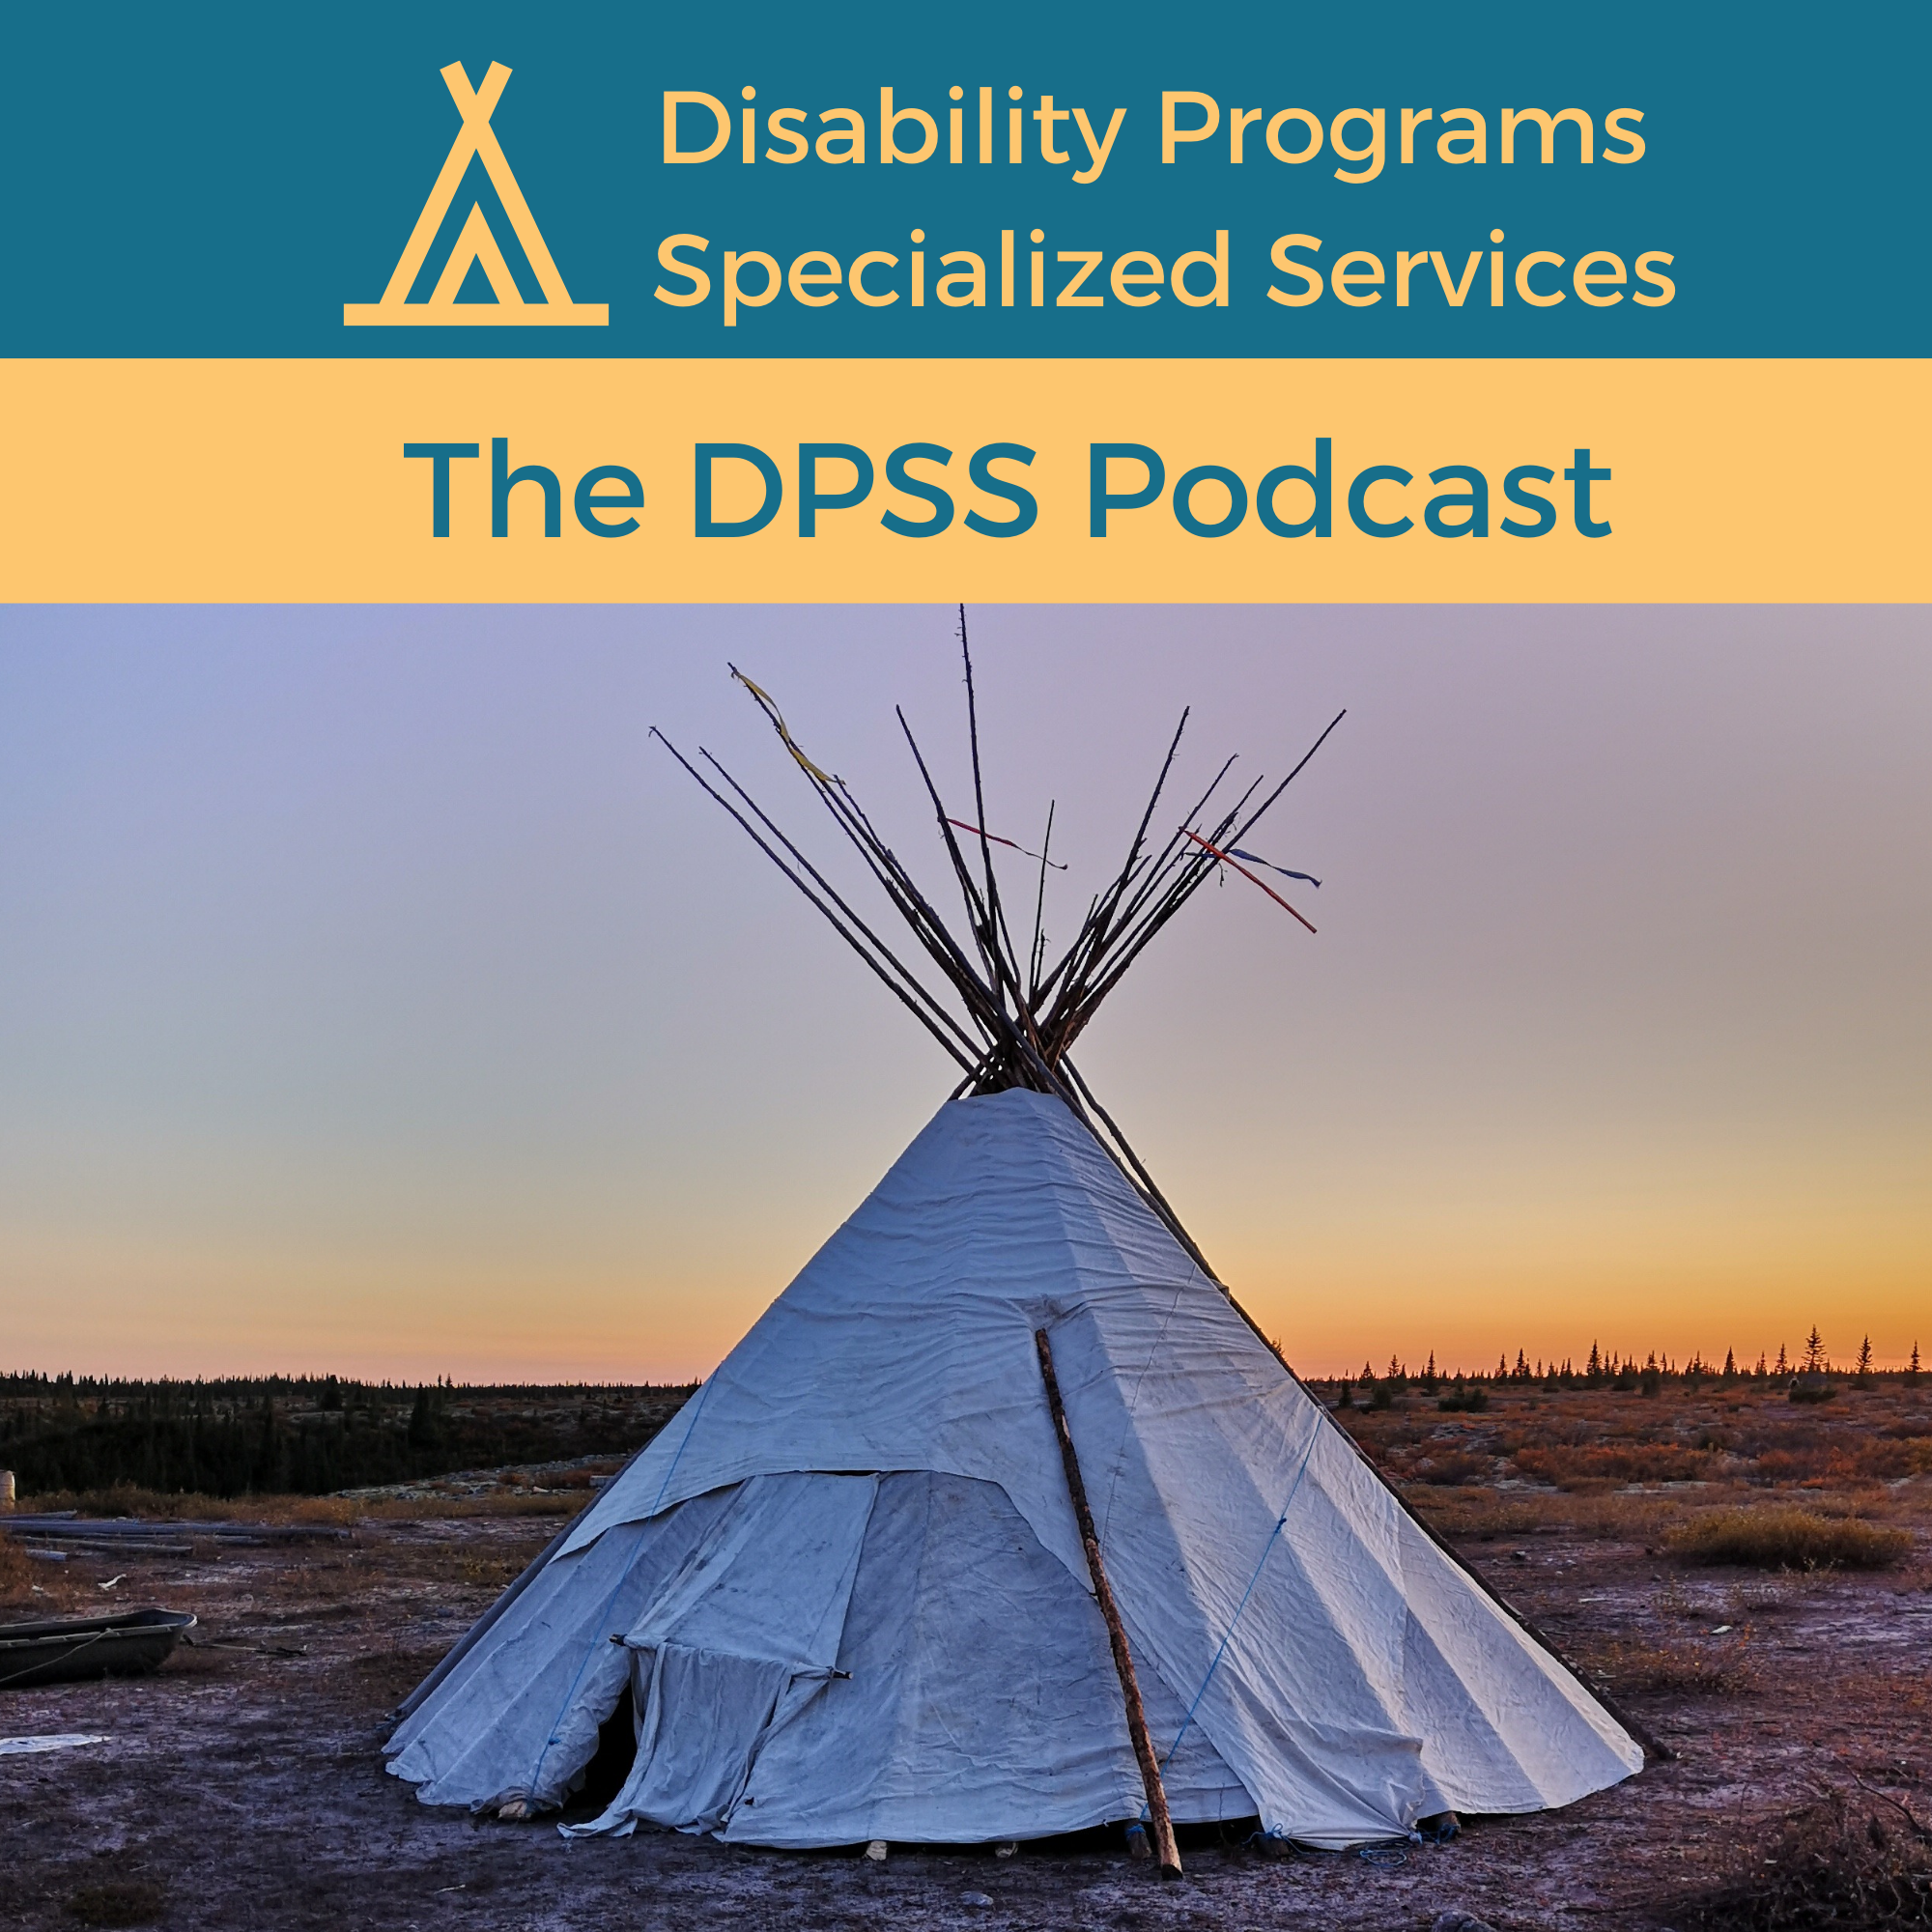 Disability Programs Specialized Services